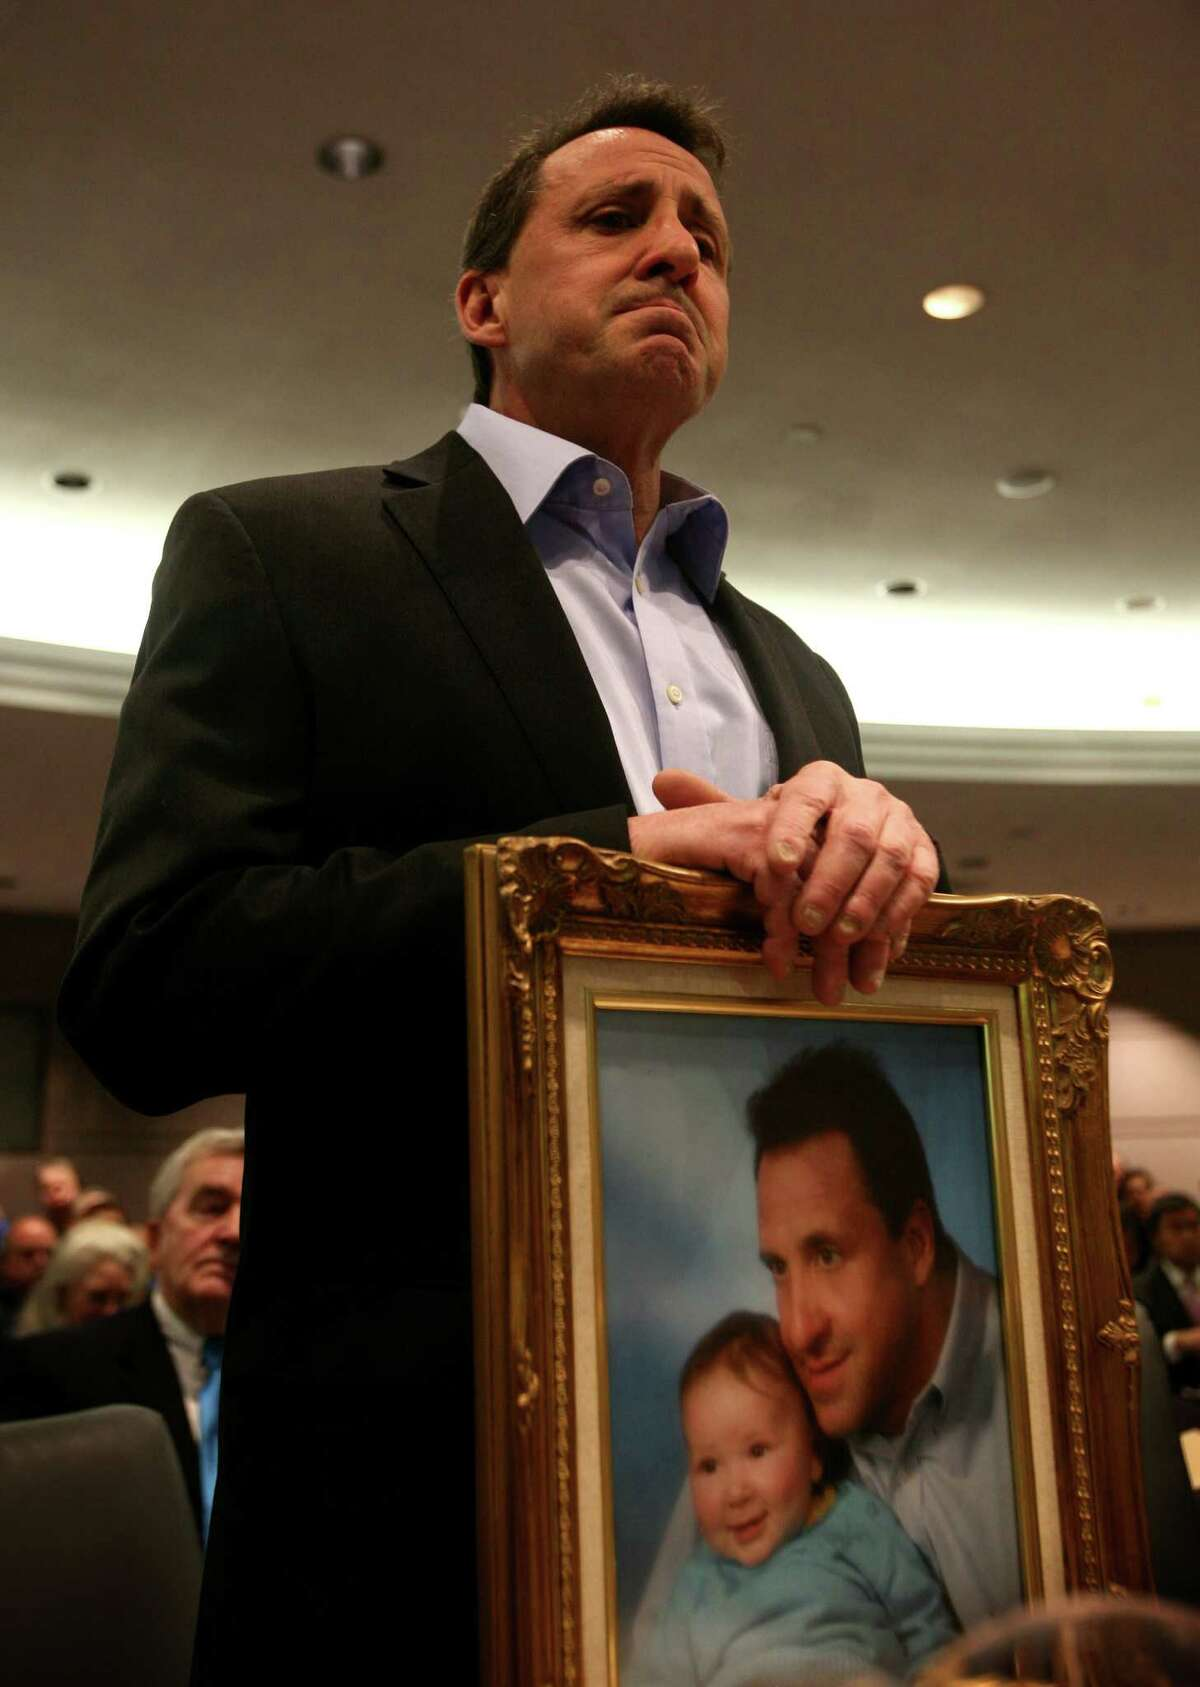 Neil Heslin, of Shelton, holds a portrait of himself and his son, Jesse Lewis, one of the children killed in the Sandy Hook School shooting, during testimony before the Gun Violence Prevention Working Group at the Legislative Office Building in Hartford on Monday, January 28, 2012.